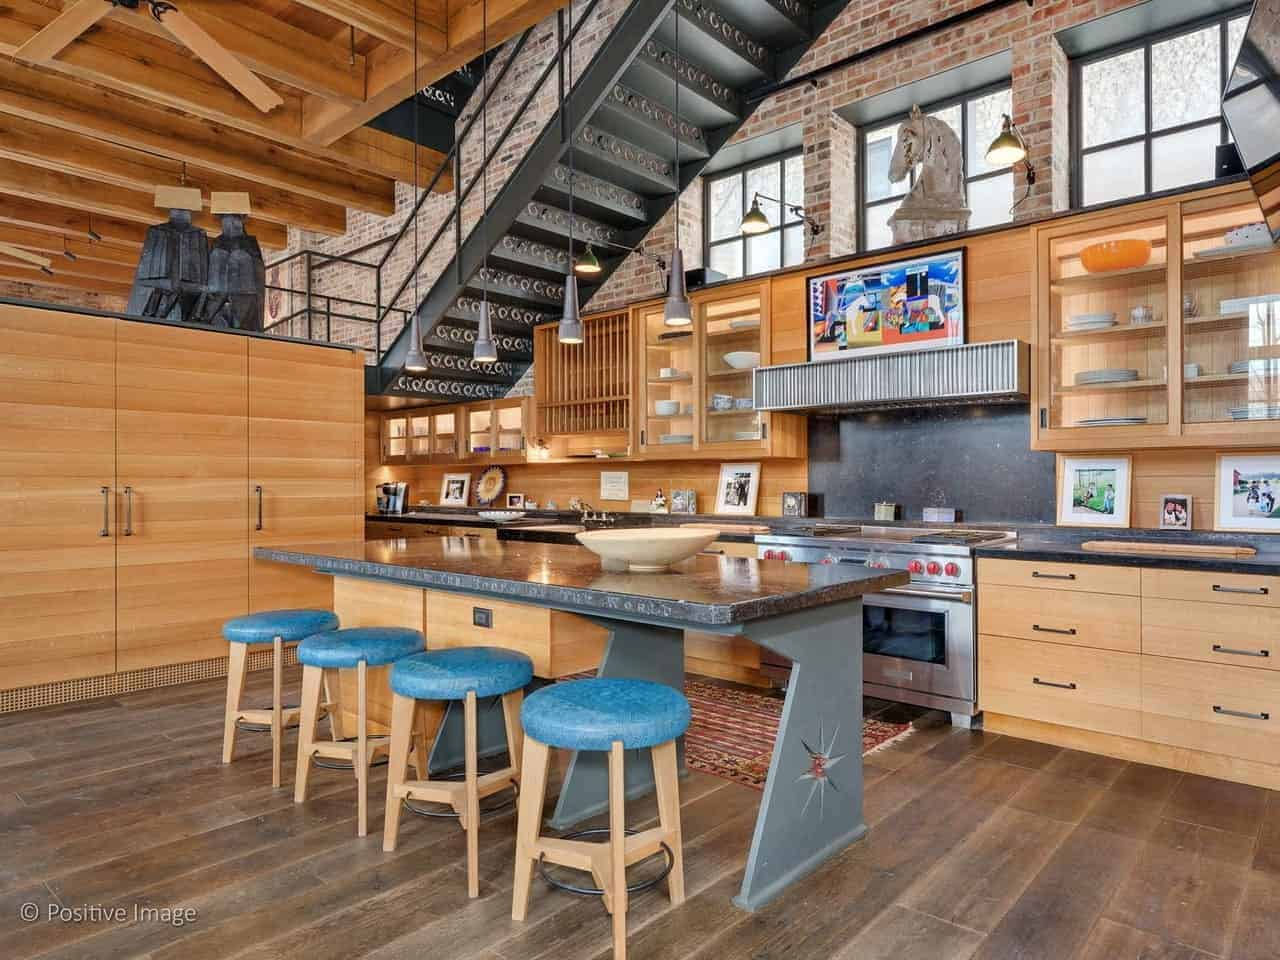 This industrial-style kitchen has a high wooden ceiling with exposed wooden beams. This matches with the wooden structures of the kitchen cabinets and drawers customized to fit under the metal stairs with a brick wall.